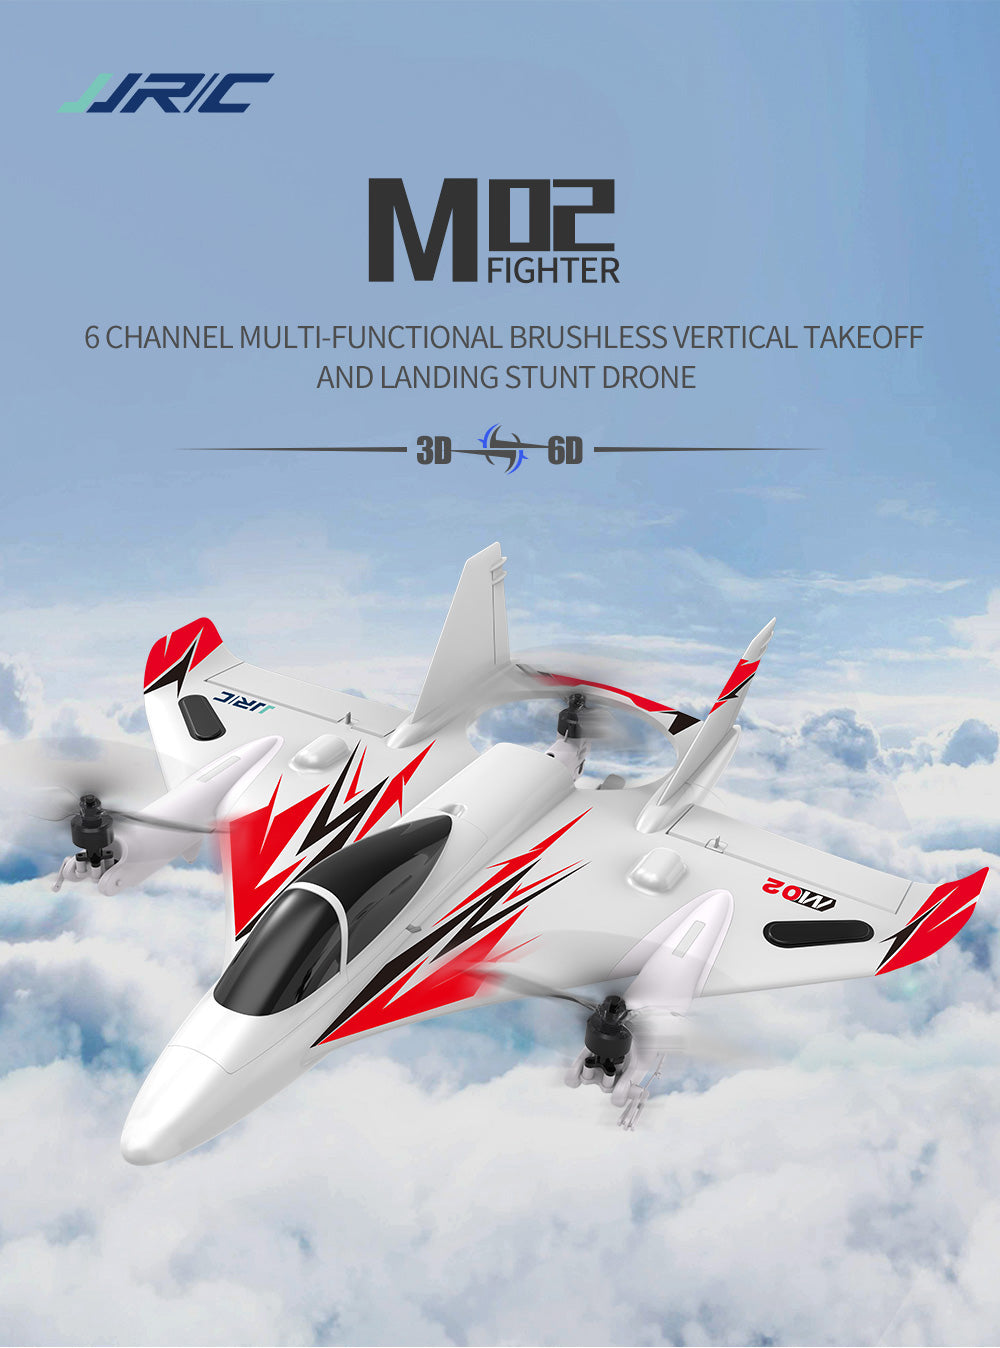 6 CHANNEL MULTI-FUNCTIONAL BRUSHLESS VERTICAL TAKEOFF AND LANDING STUNT DRONE